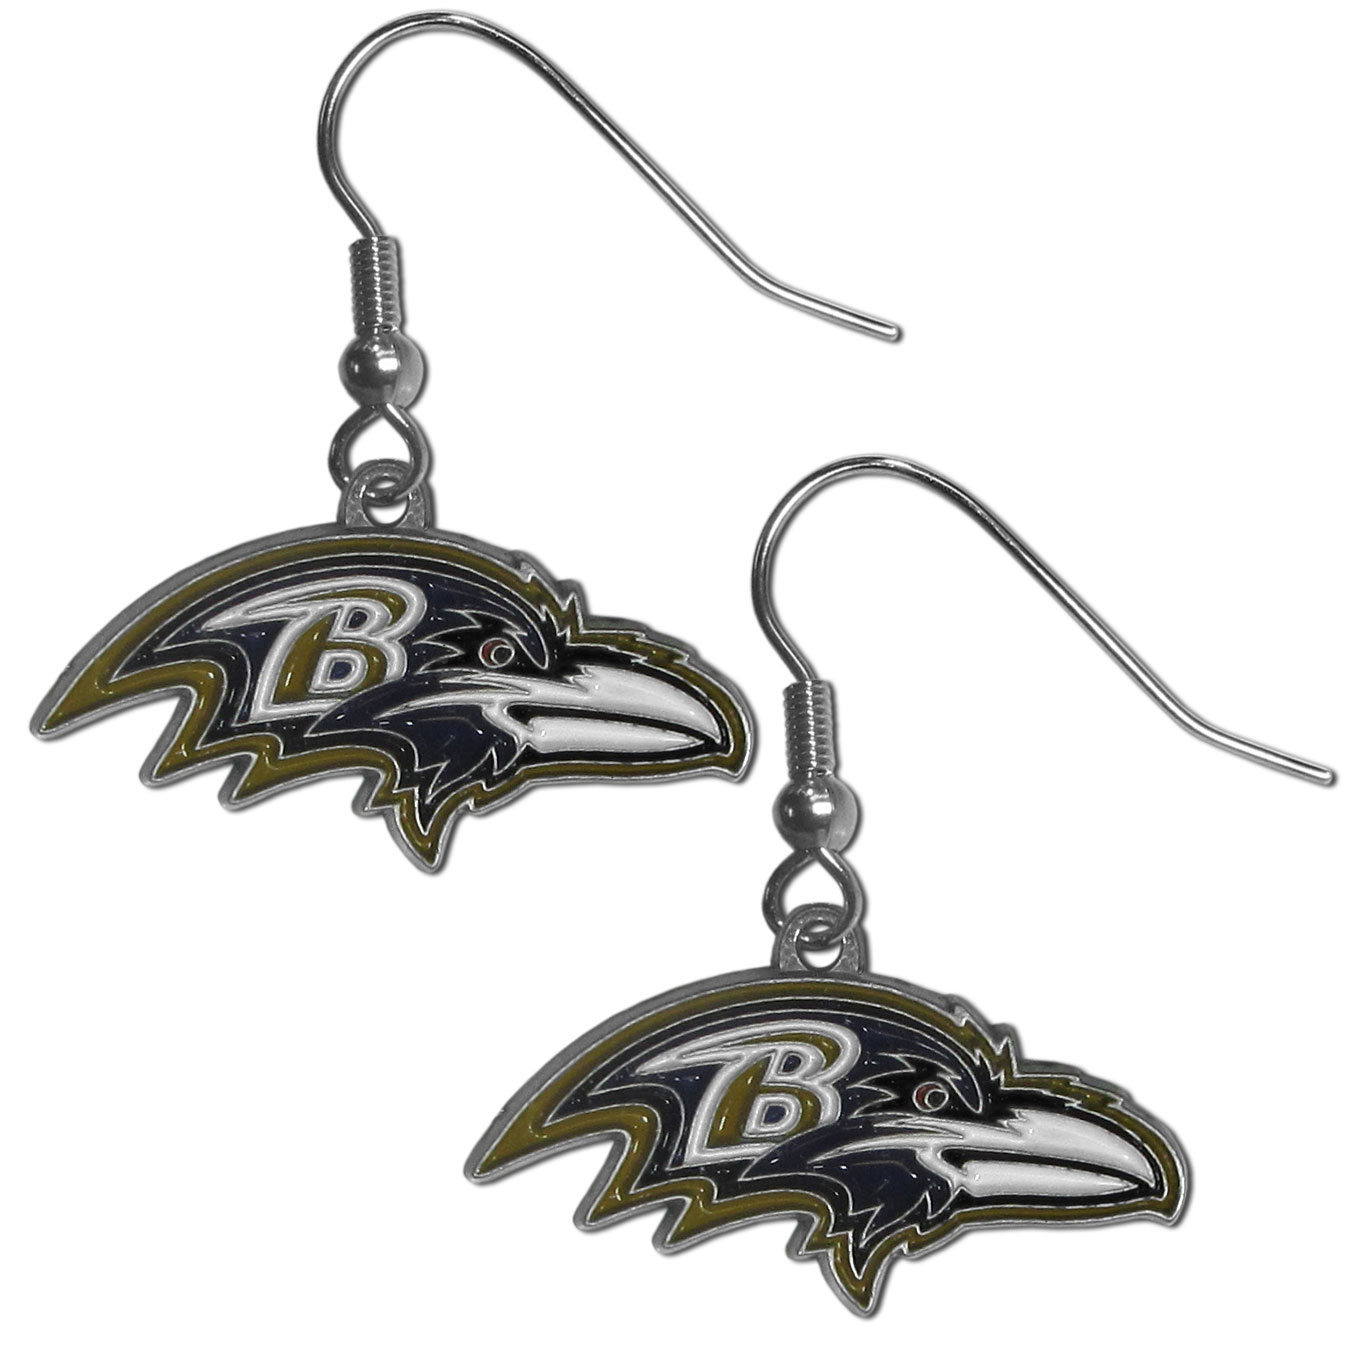 NFL Dangle Earrings - Baltimore Ravens - Enameled zinc Baltimore Ravens logo earrings with the NFL Baltimore Ravens Logo. A great way to show off your Baltimore Ravens spirit! Check out our entire licensed sports Baltimore Ravens jewelry line! Officially licensed NFL product Licensee: Siskiyou Buckle Thank you for visiting CrazedOutSports.com